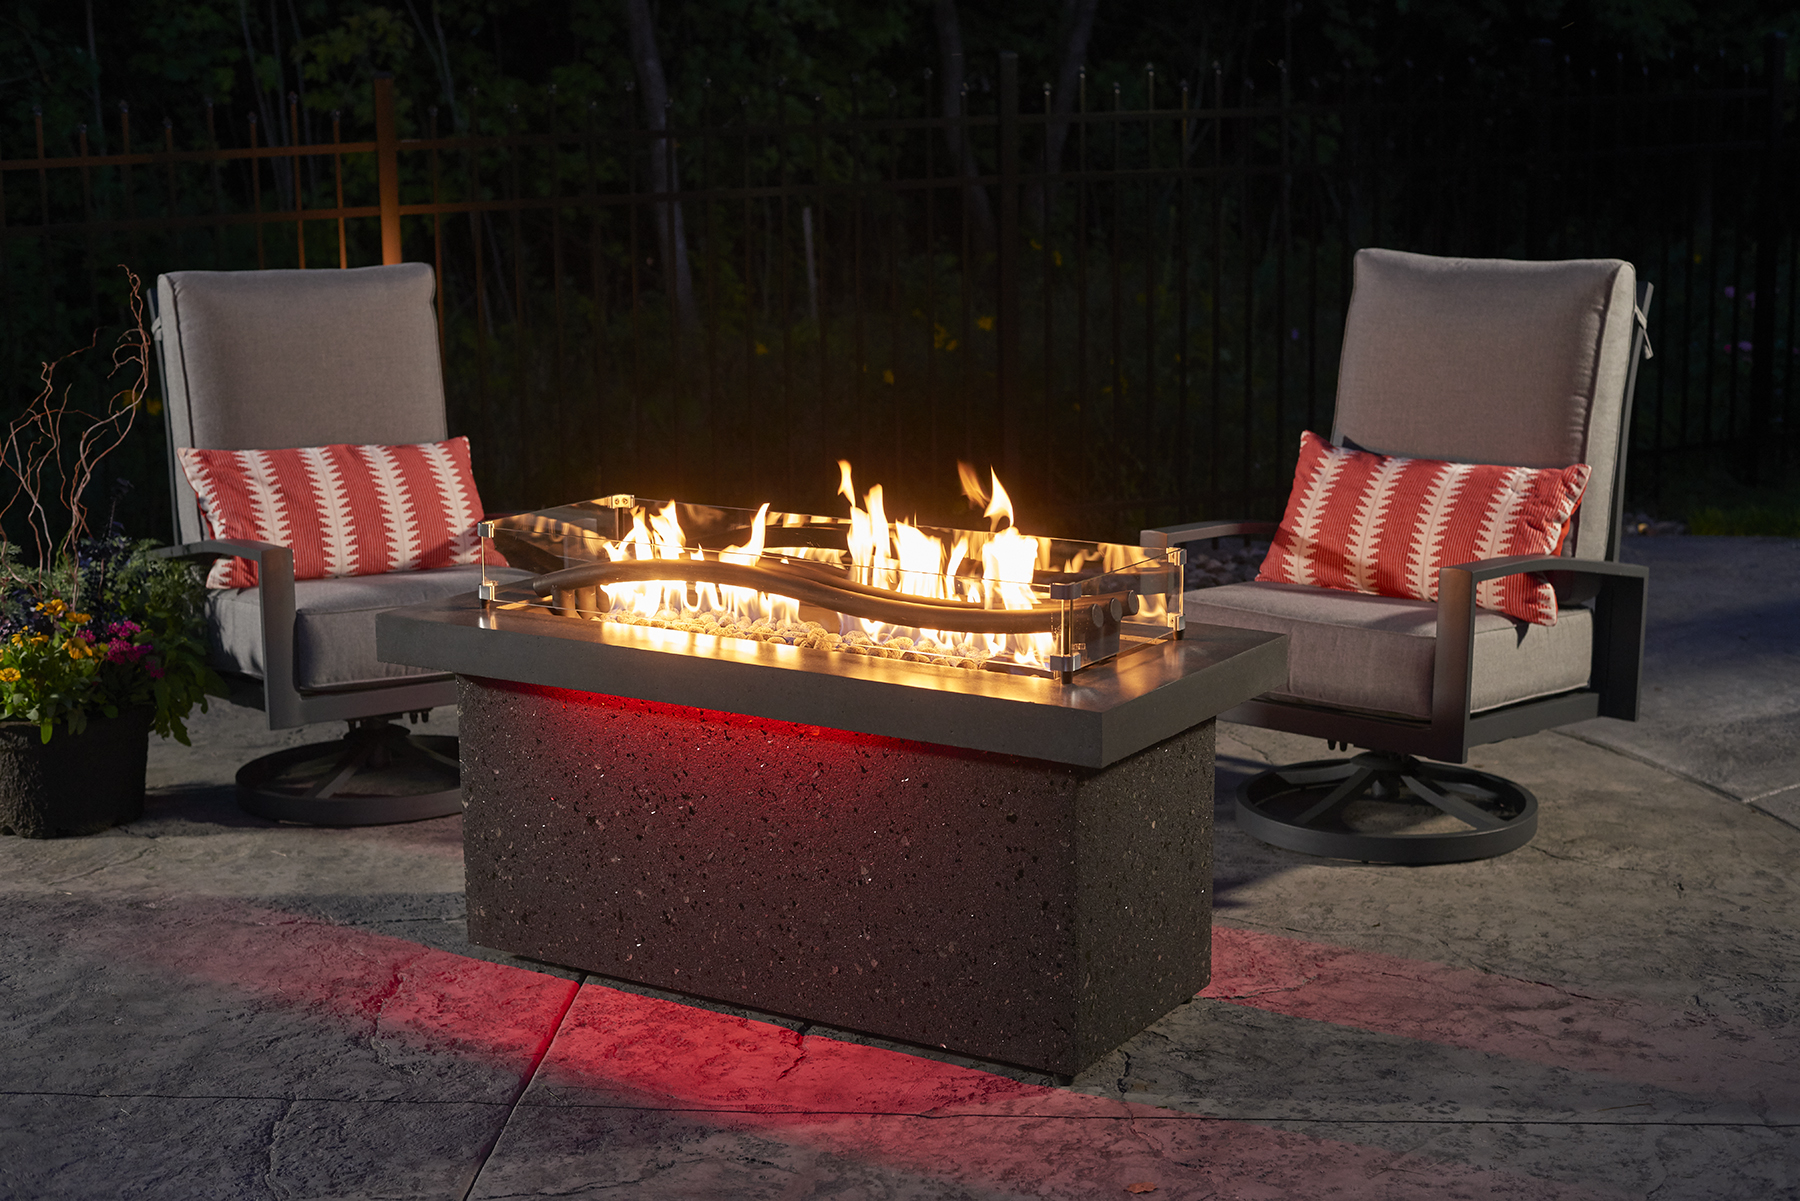 Boreal Complete Heat Fire Pit Table Red. This Beautiful Outdoor Heater is Available at BBQ Concepts of Las Vegas, Nevada